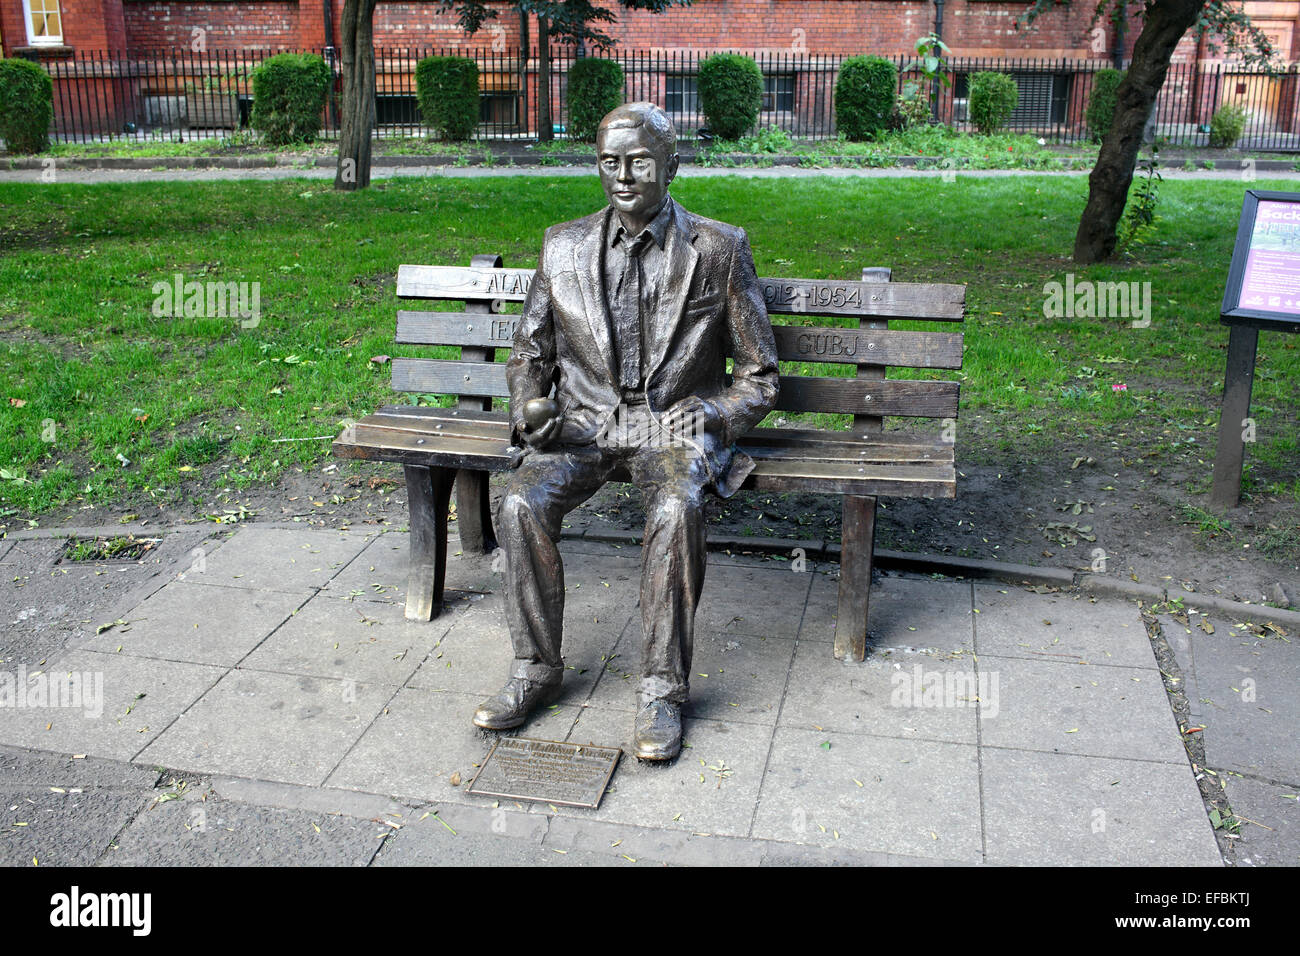 Statue of Alan Turing on a seat, in Sackville Gardens, Manchester. - Stock Image